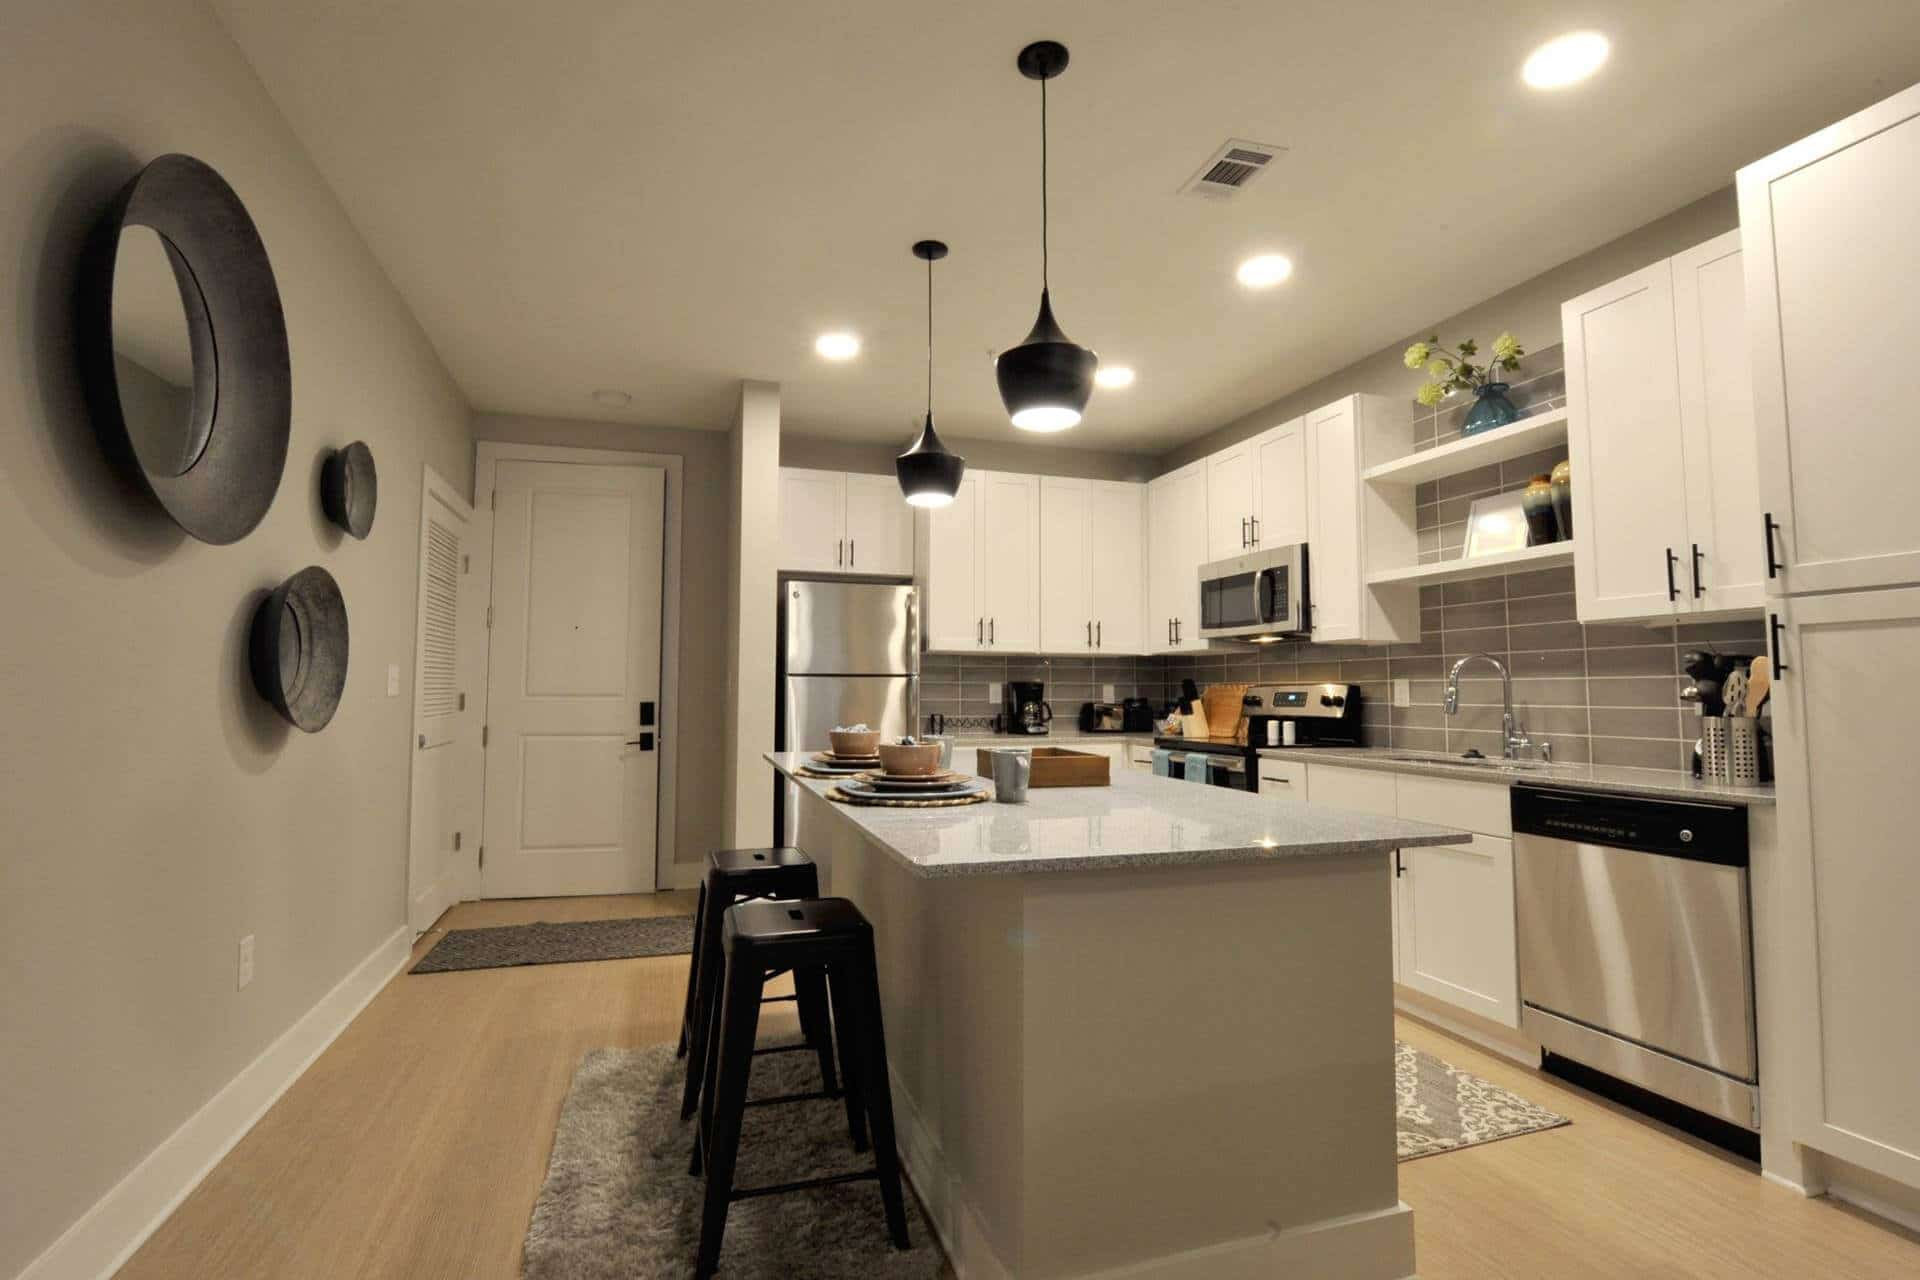 Furnished Apartments in Little Rock